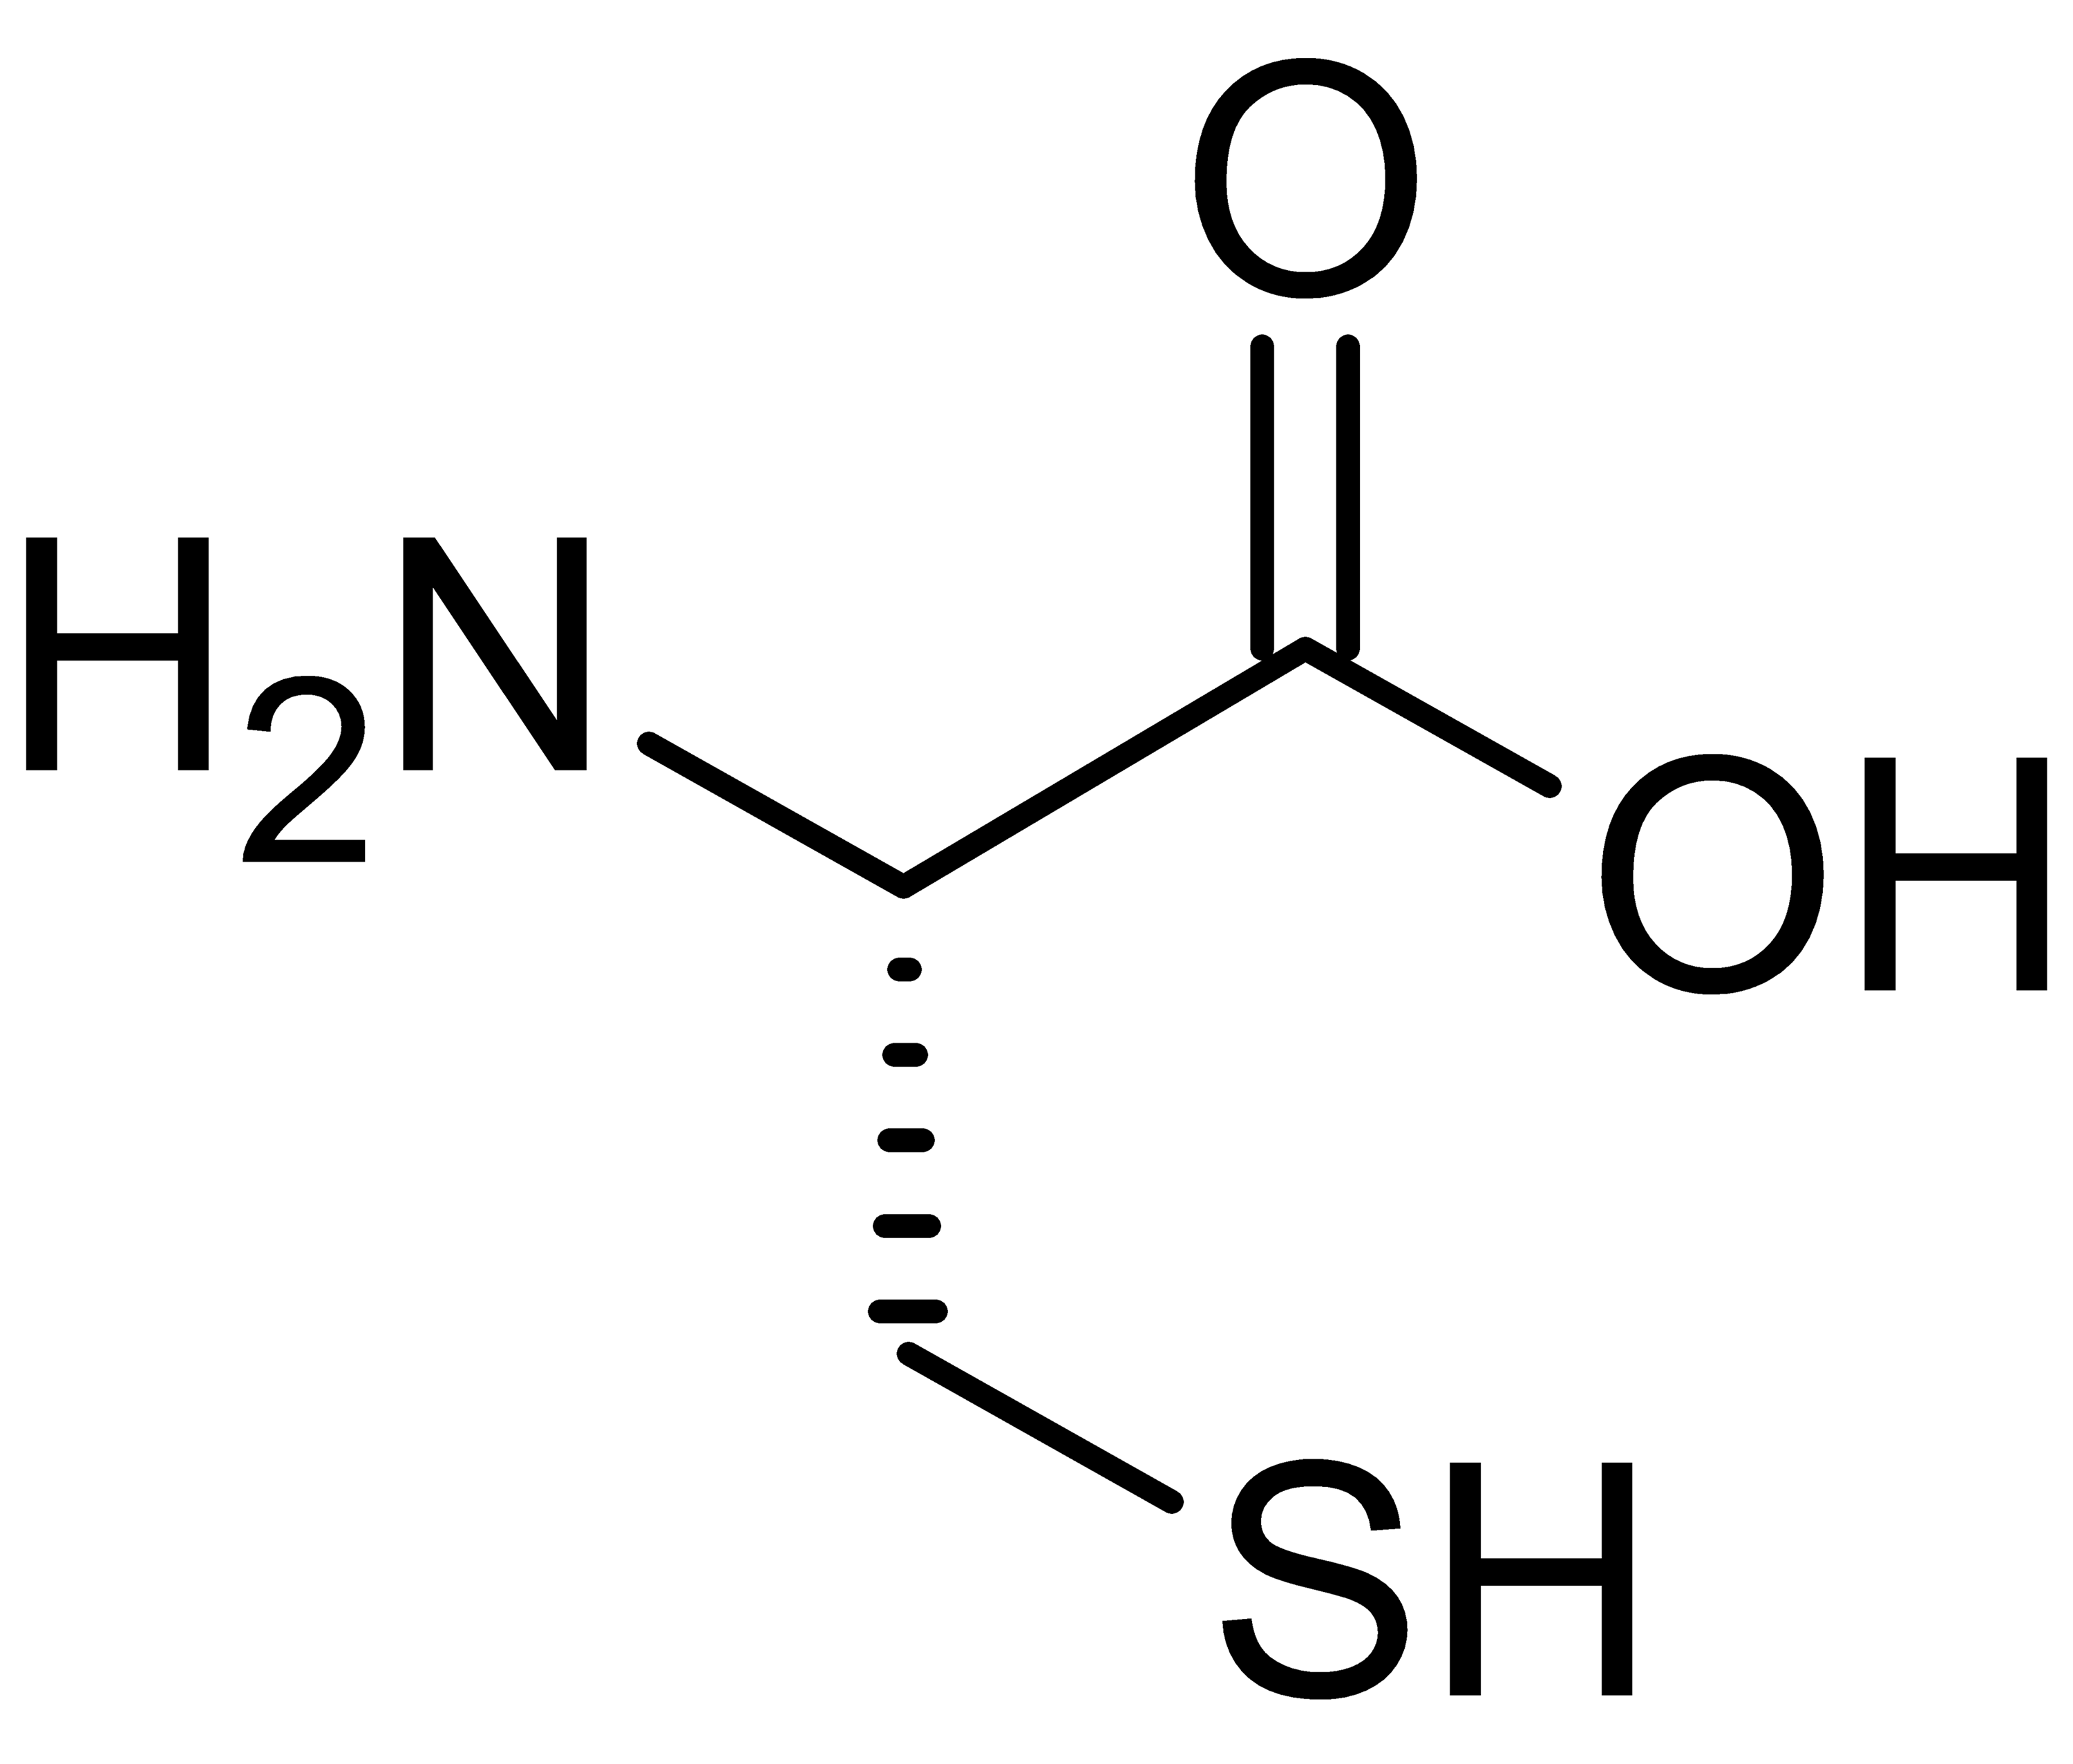 File:Cysteine on Chemical Element